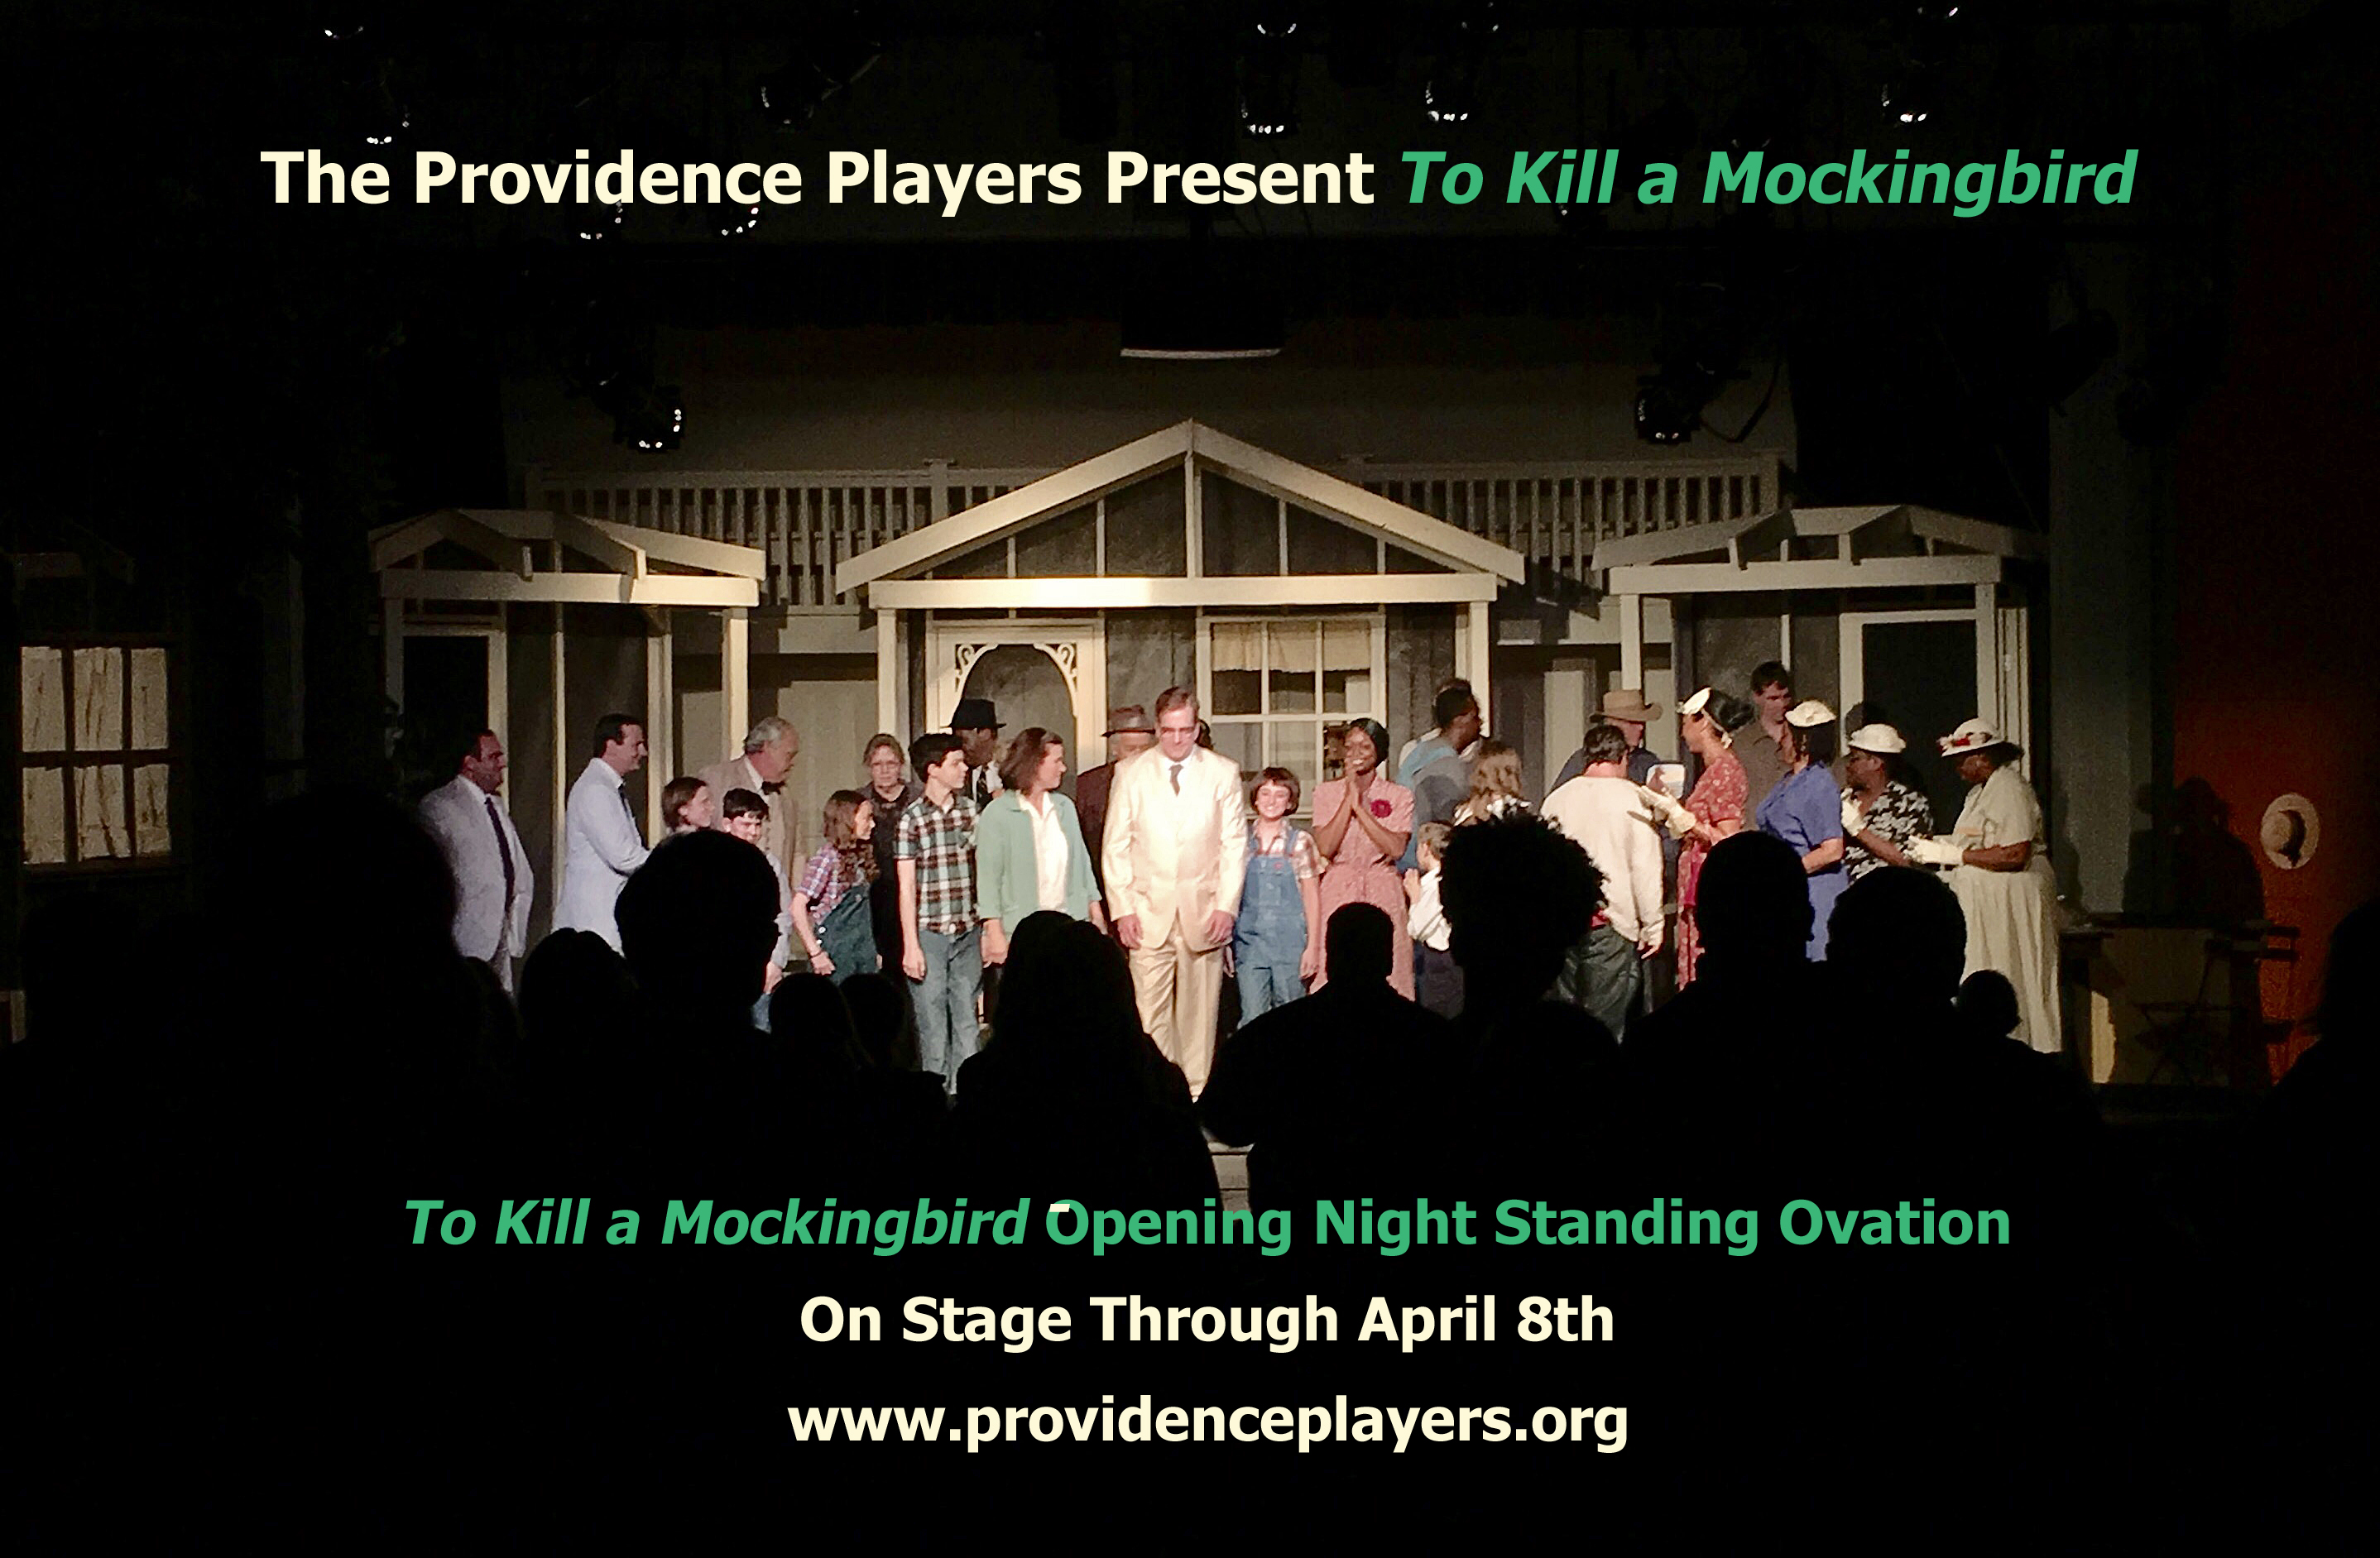 To Kill a Mokingbird Opening Night Standing Ovation Photo by Chip Gertzog Providence Players With Text